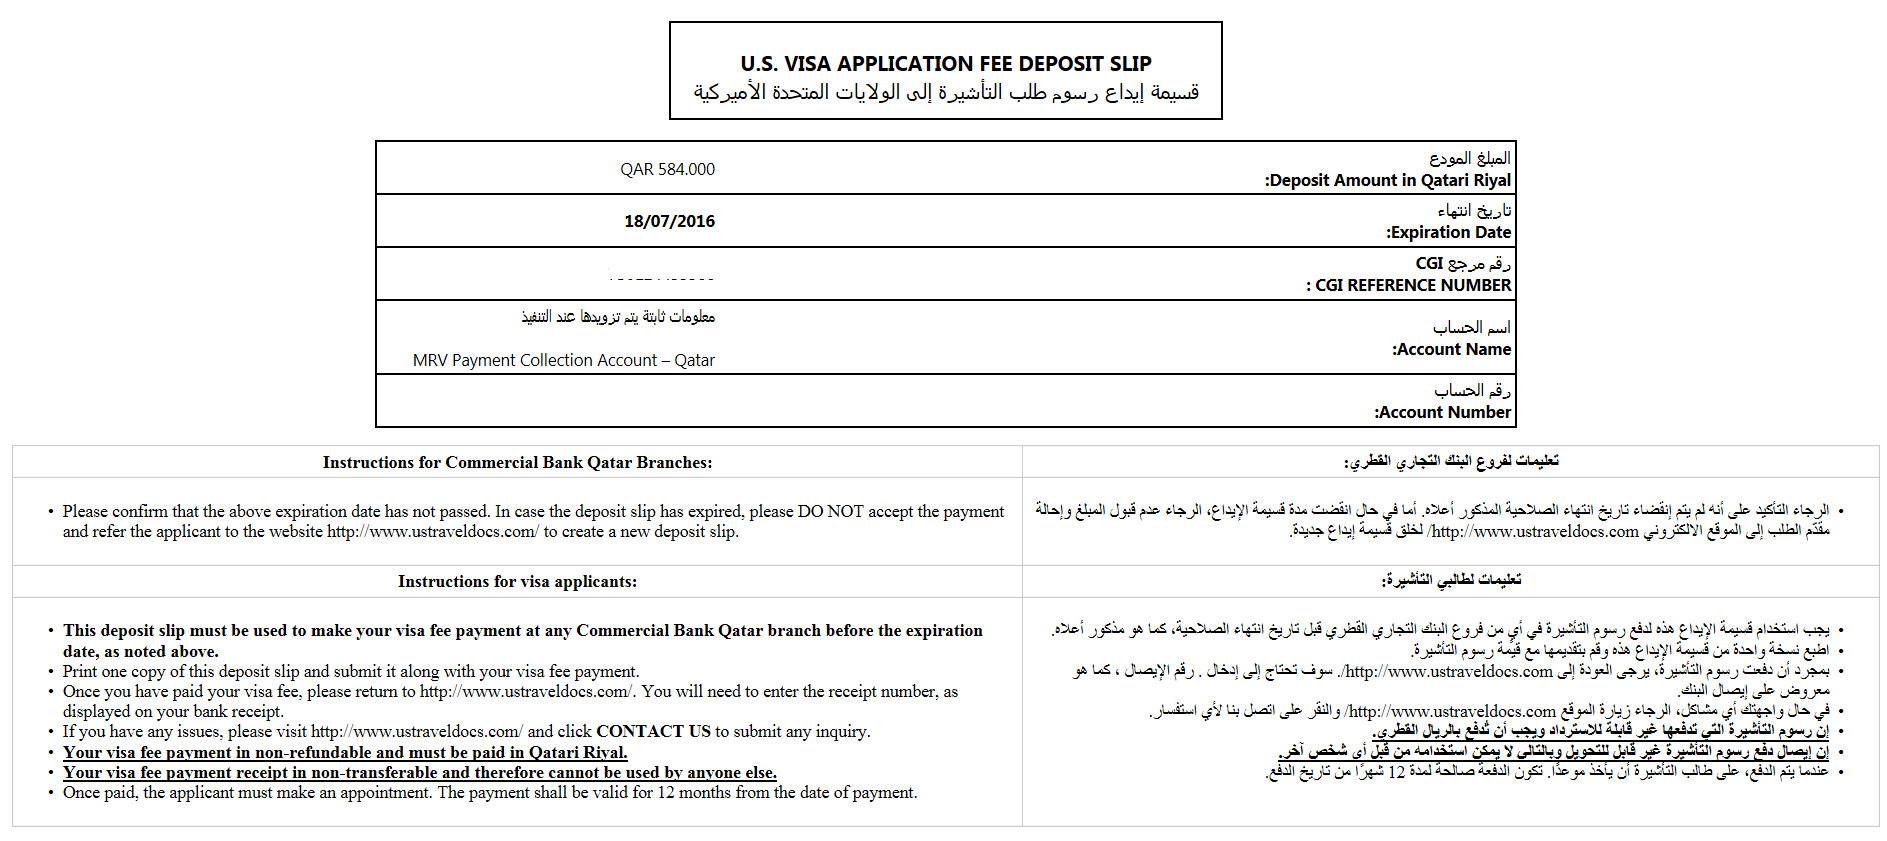 Guide to getting a usa tourist visa in qatar you will need the receipt number on the bank receipt to schedule your visa appointment altavistaventures Image collections